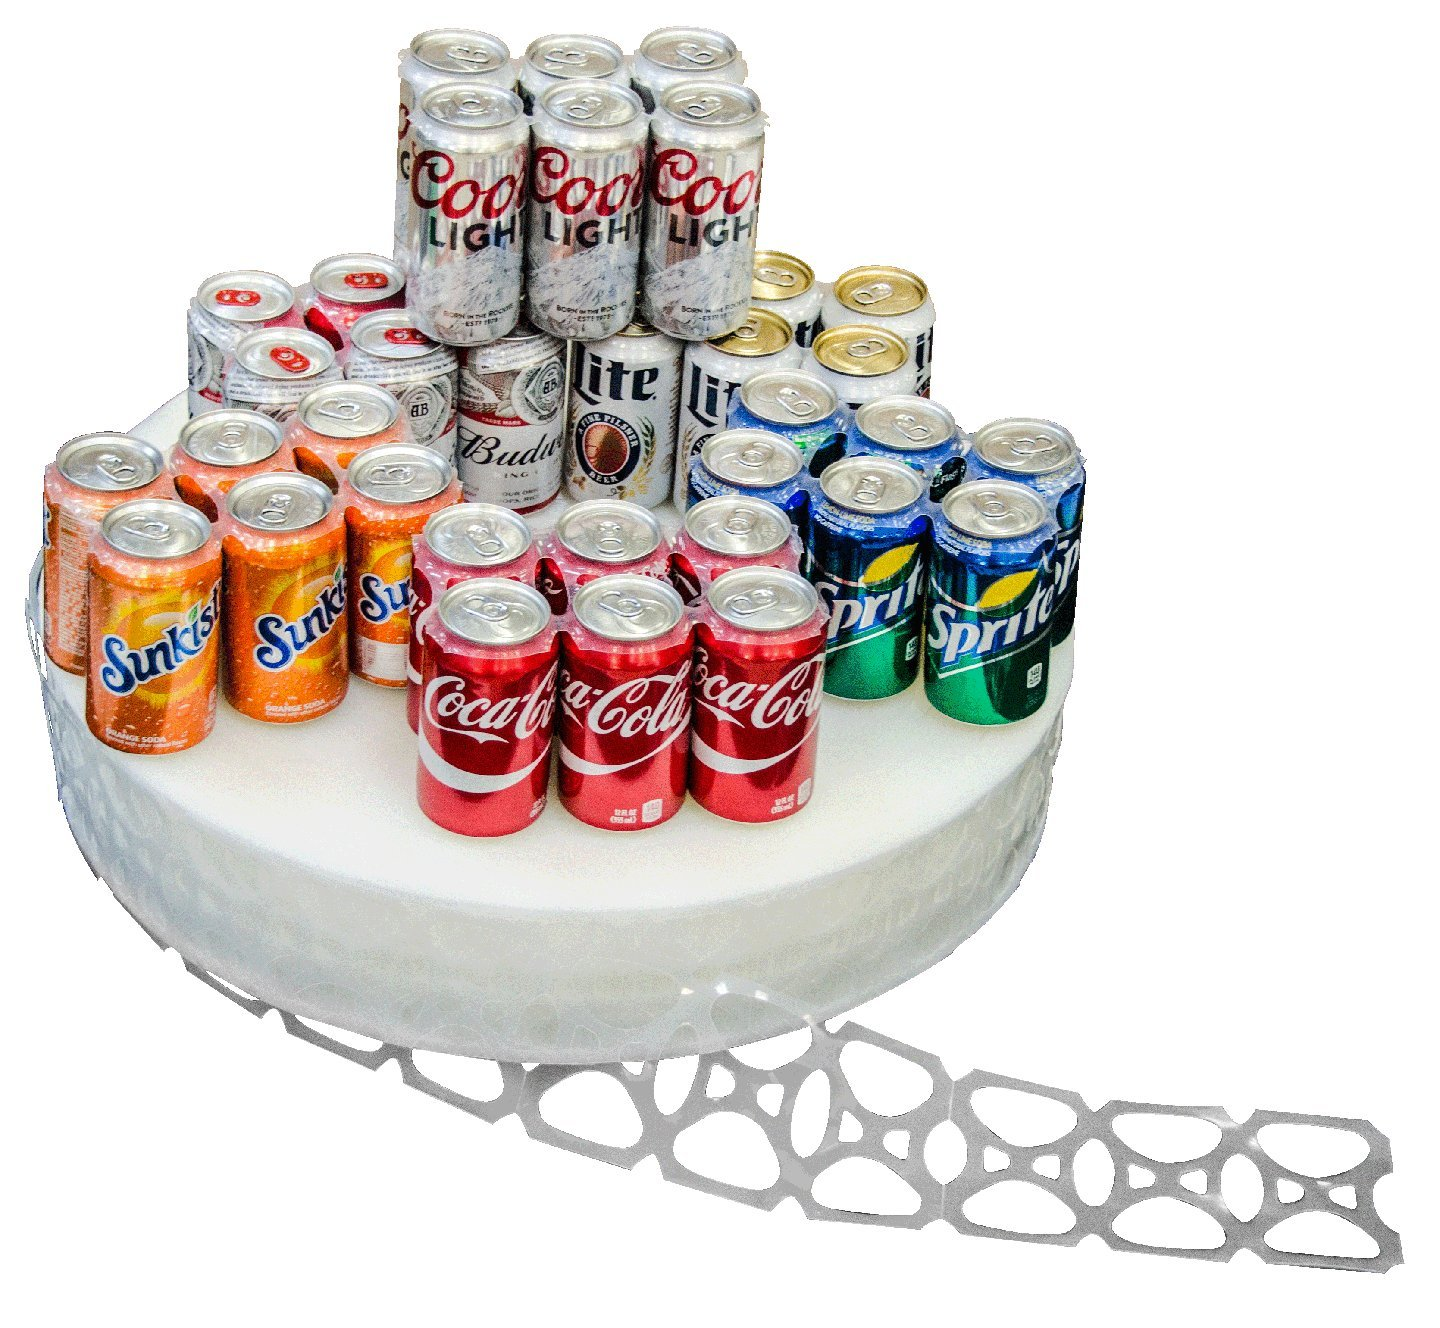 4300 Count Roll 6-Pack Rings Universal Fit - Fits all 12oz Beer Soda Cans by C-STORE PACKAGING